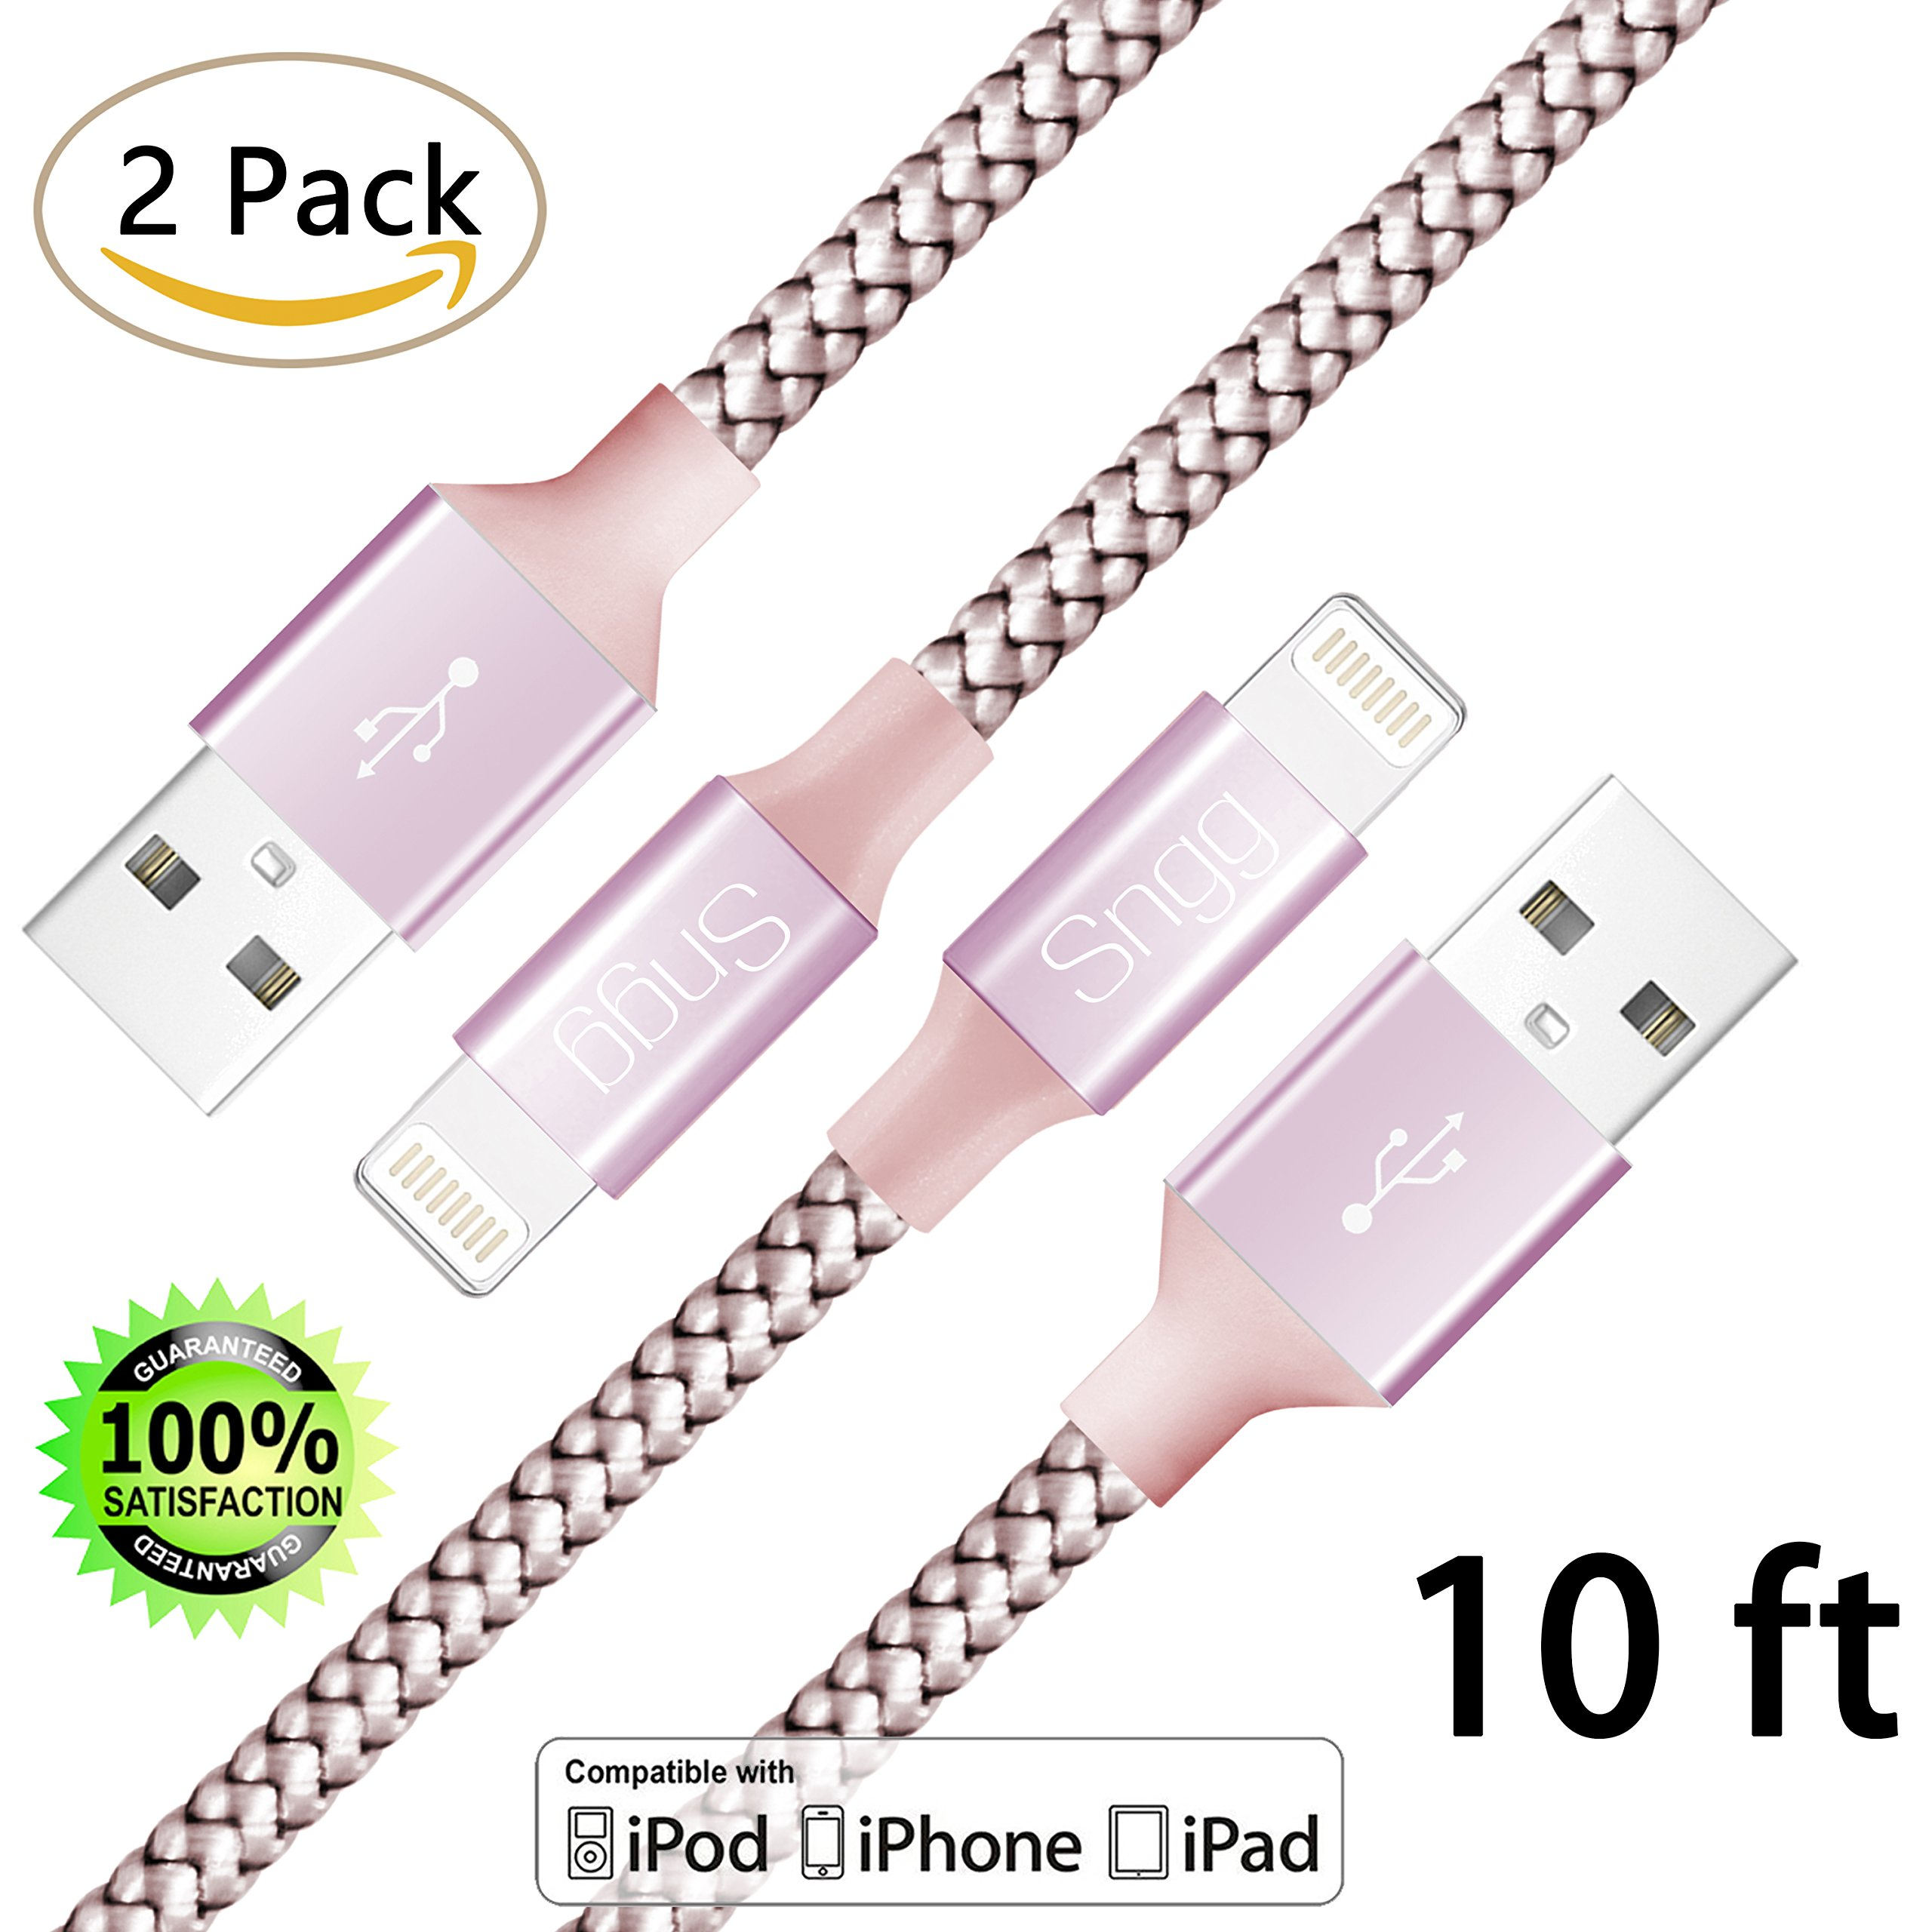 Sngg rgy-sdgdfg iPhone Cable,Lightning to USB Cable 2Pack 10FT Nylon Braided Cord to USB Charging Charger for iPhone 7/7 Plus/6S/6S Plus,SE/5S/5,iPad,iPod Nano 7 (Rose Gold,10FT)